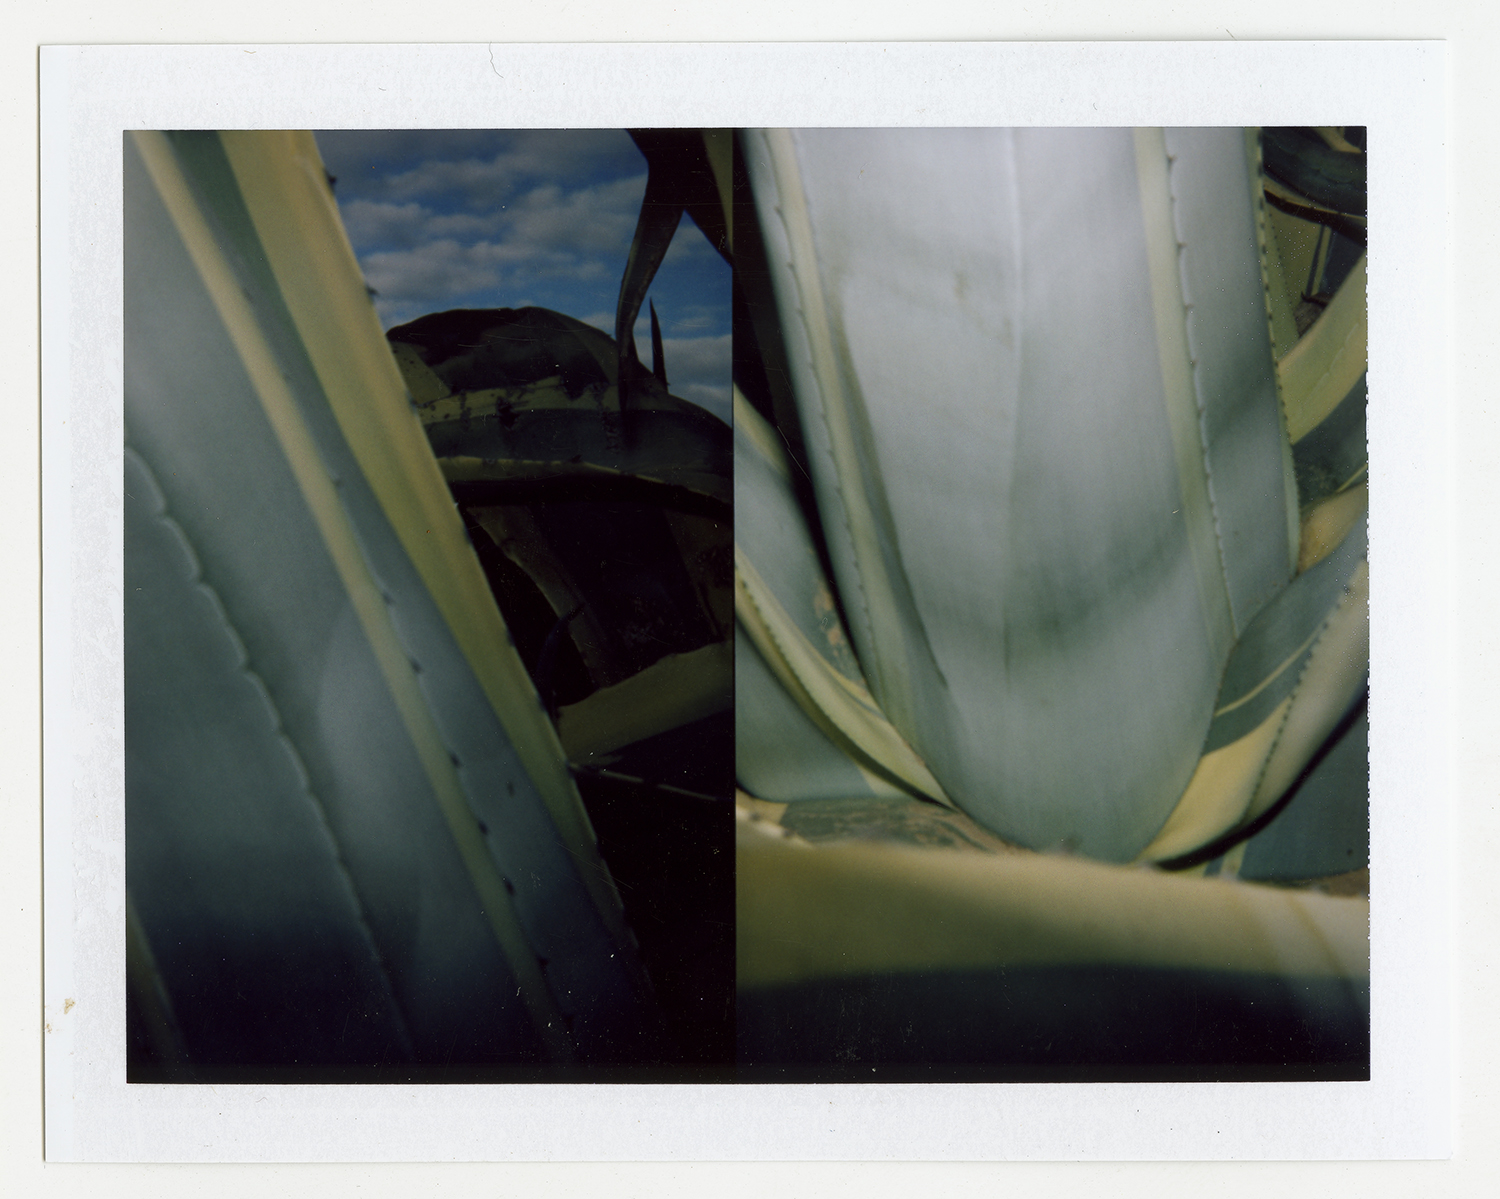 I.D.057, The Polaroid Revolutionary Workers, 2013, Polaroid Picture, 107mm x 86mm